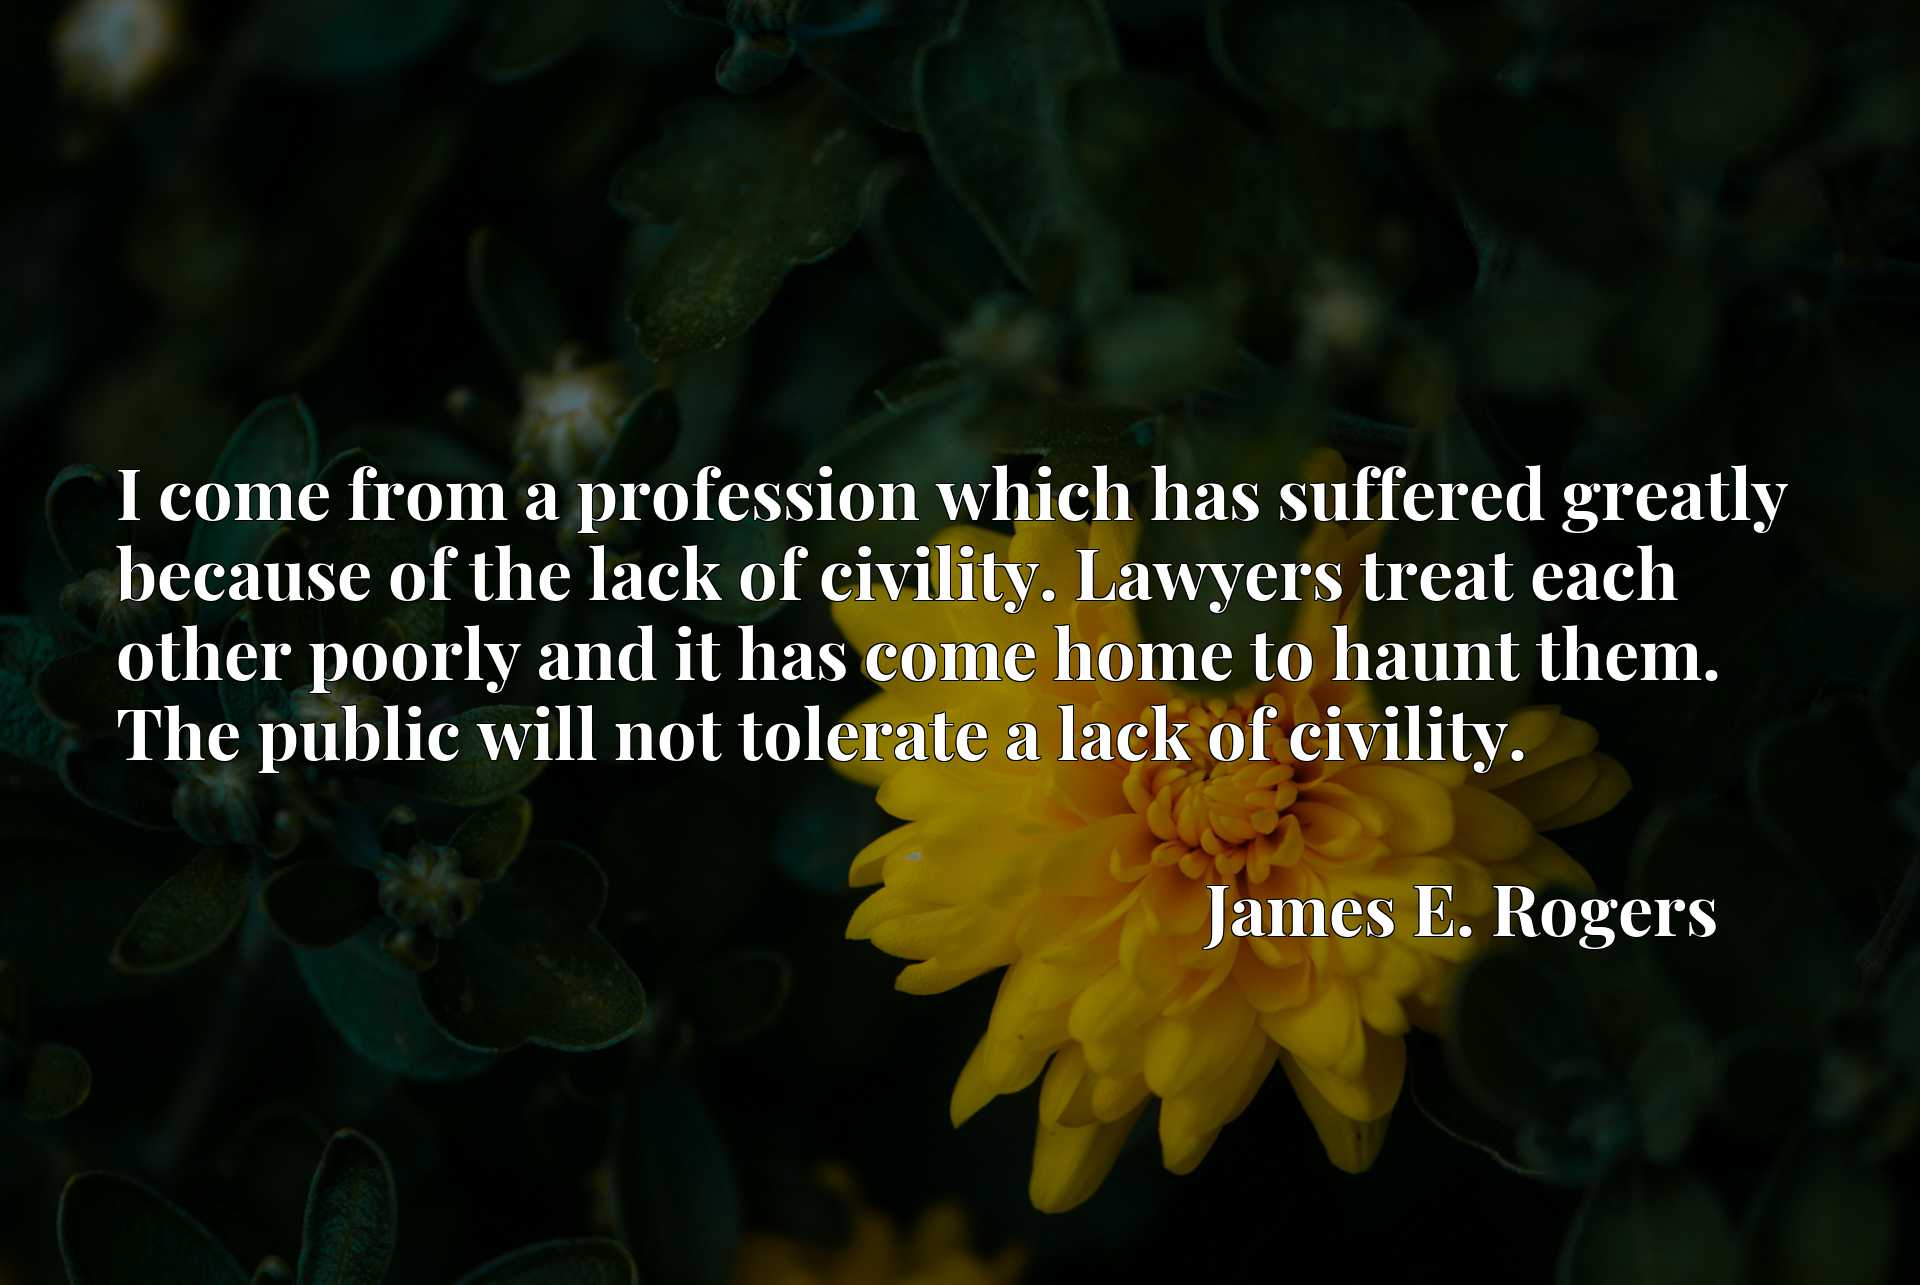 I come from a profession which has suffered greatly because of the lack of civility. Lawyers treat each other poorly and it has come home to haunt them. The public will not tolerate a lack of civility.